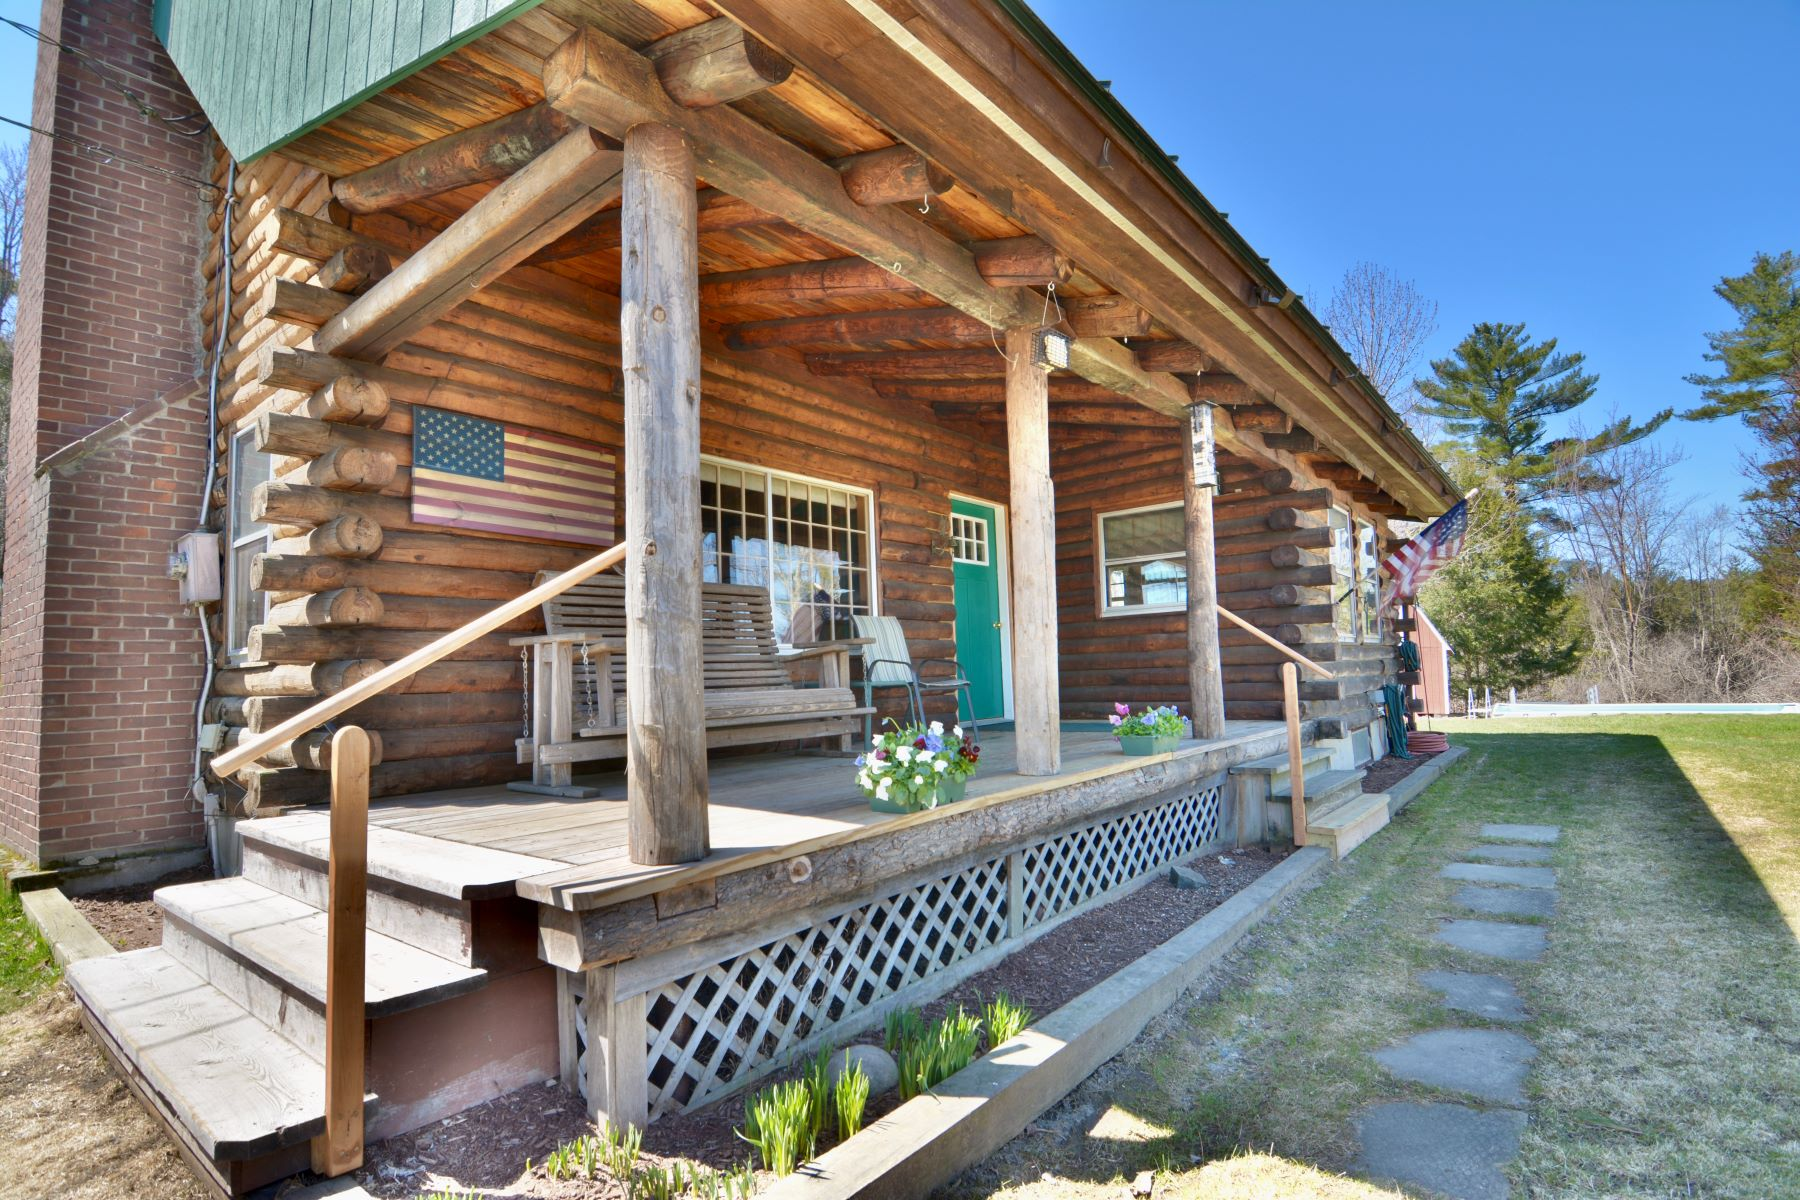 Single Family Homes for Active at Three Bedrom Log Home in Lebanon 58 Daisy Hill Road Lebanon, New Hampshire 03766 United States